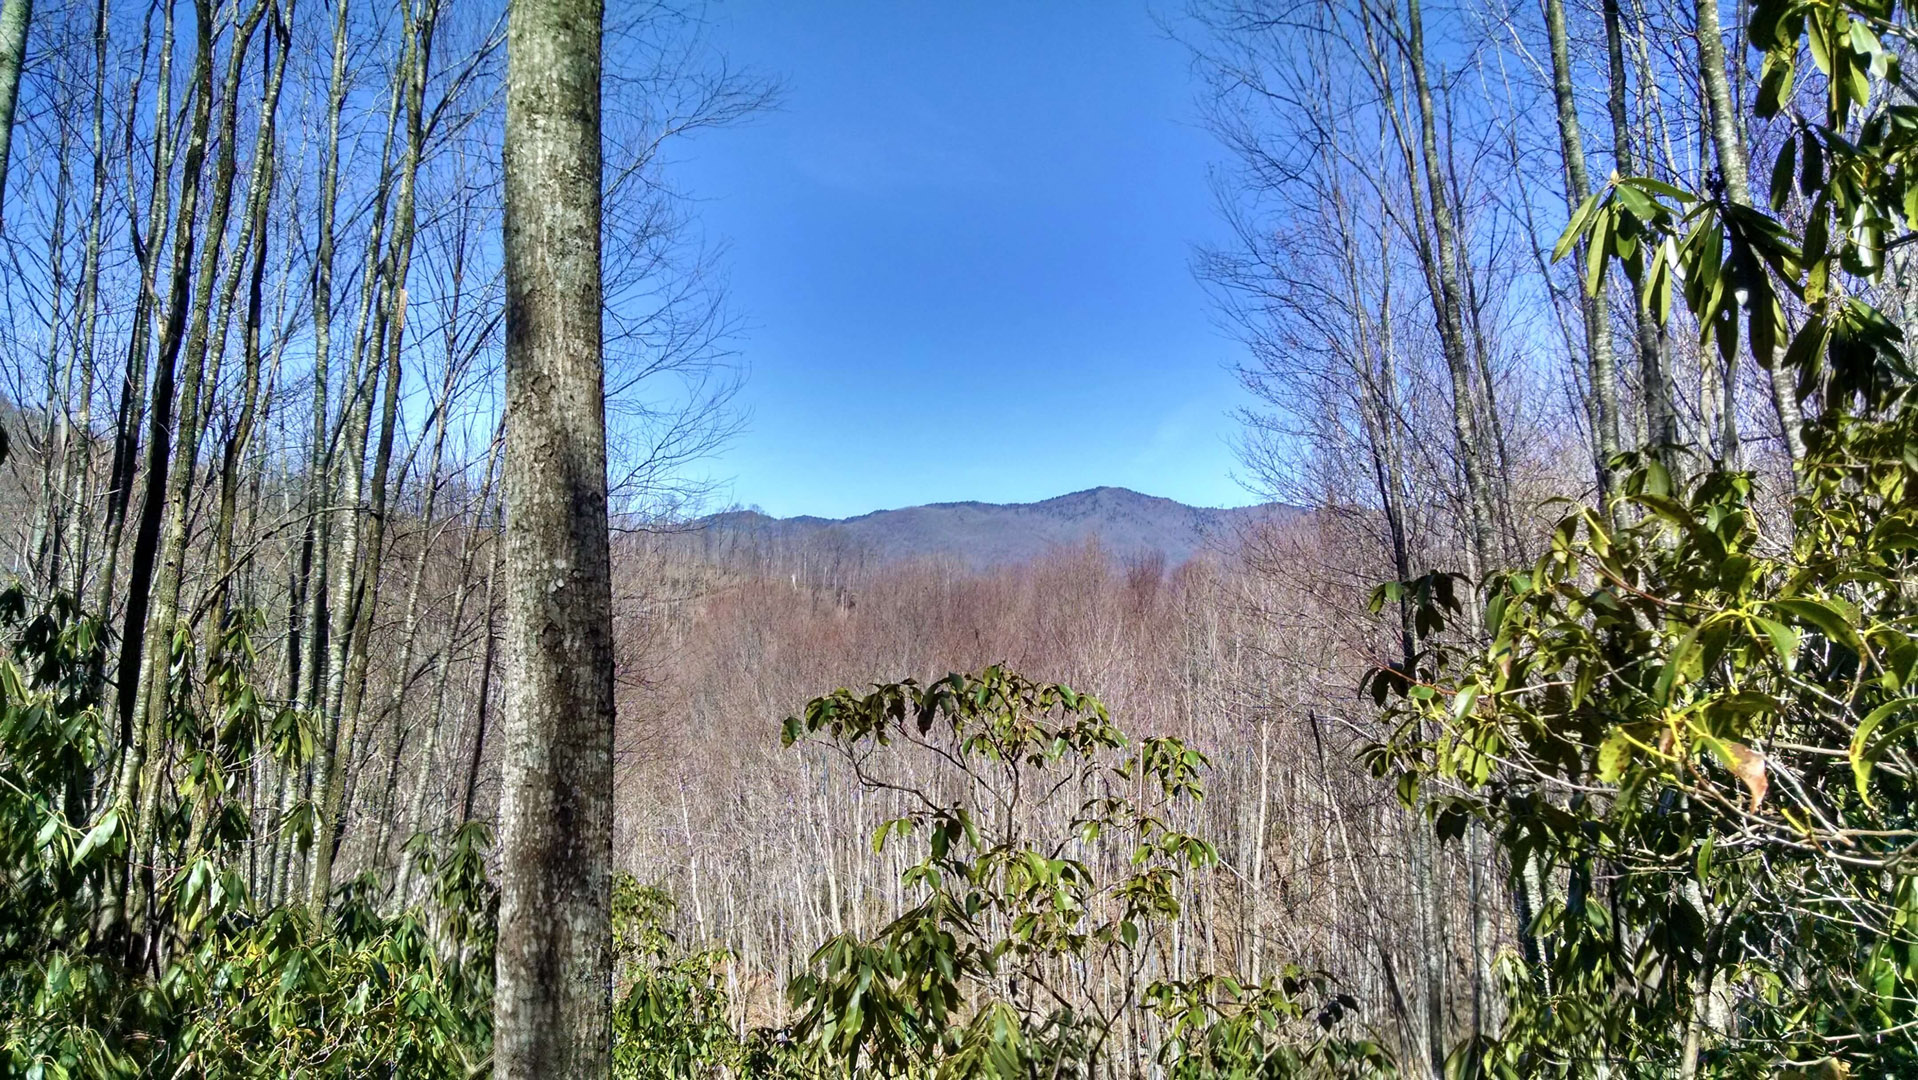 Balsam Mountain Preserve Lot 233 Balsam Mountain Preserve